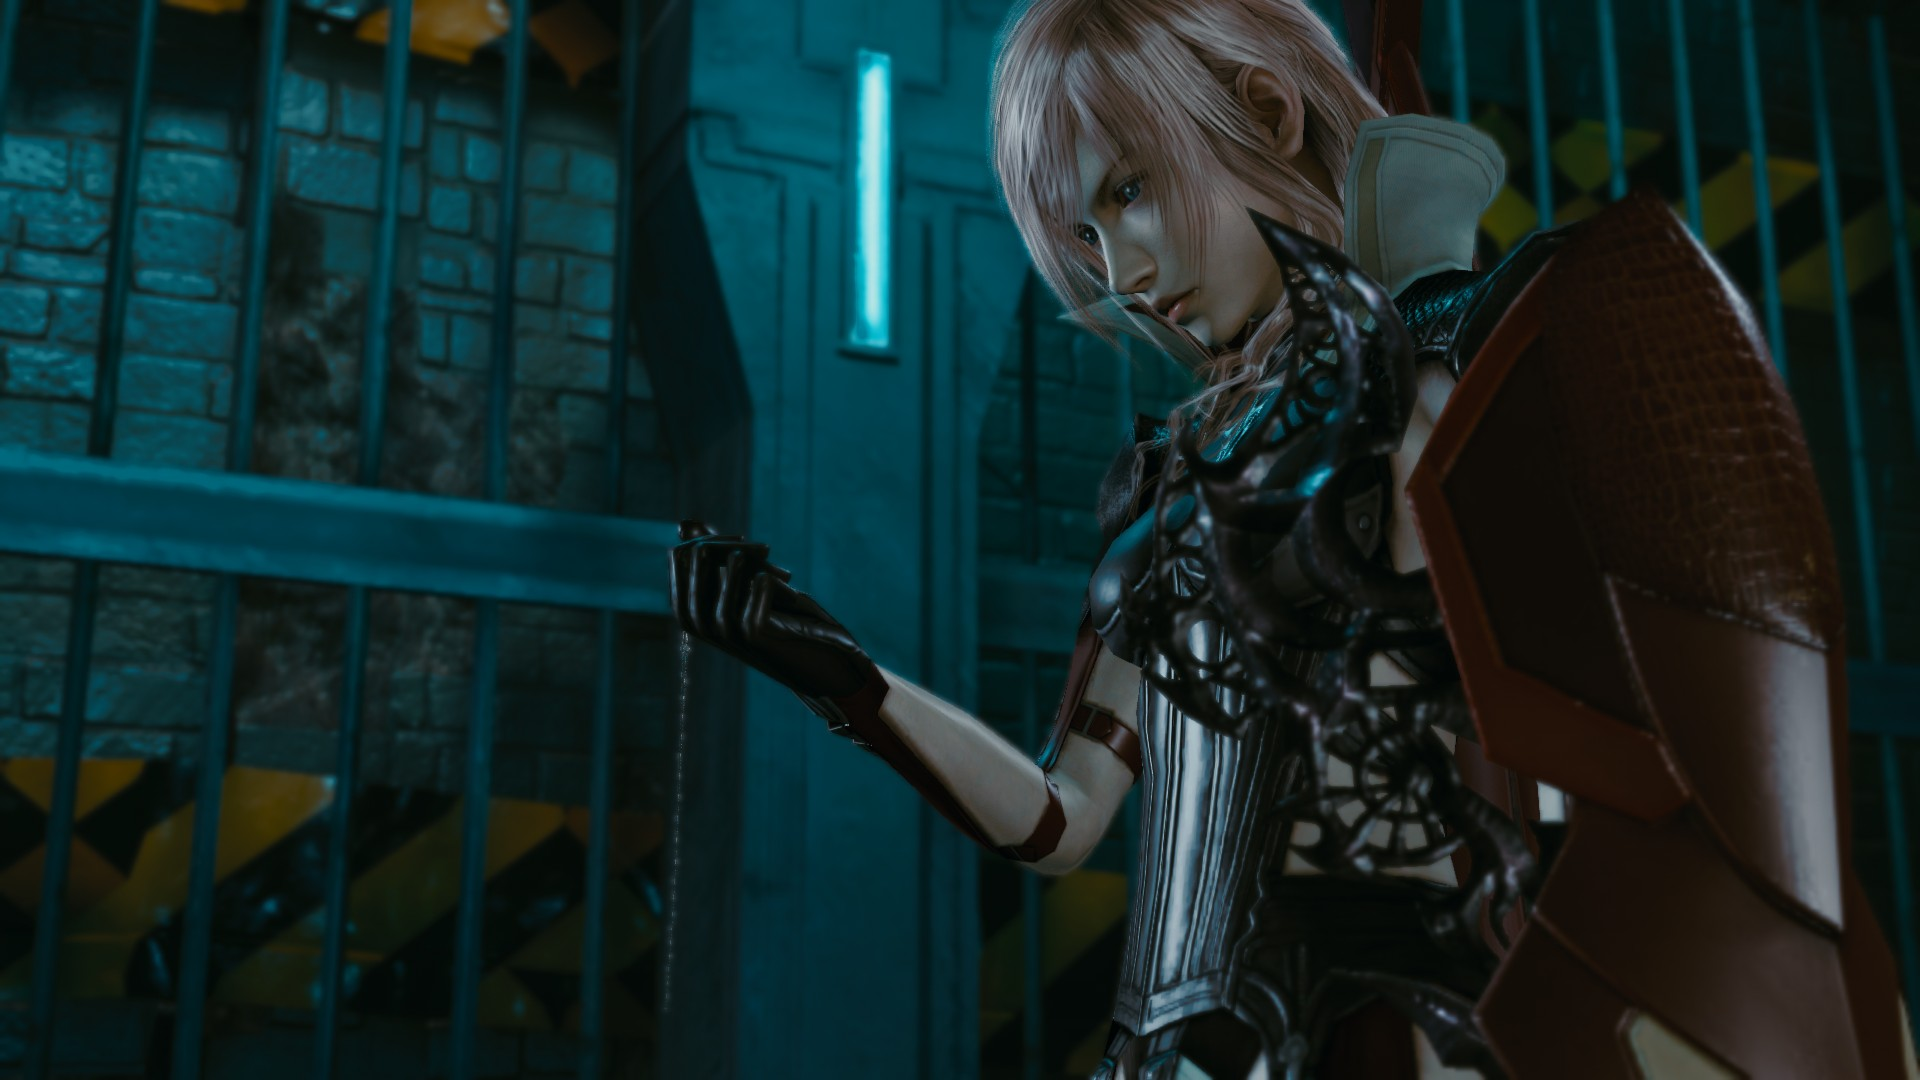 Ffxiii Lightning Returns Will Be Limited To 1080p 60fps On Pc